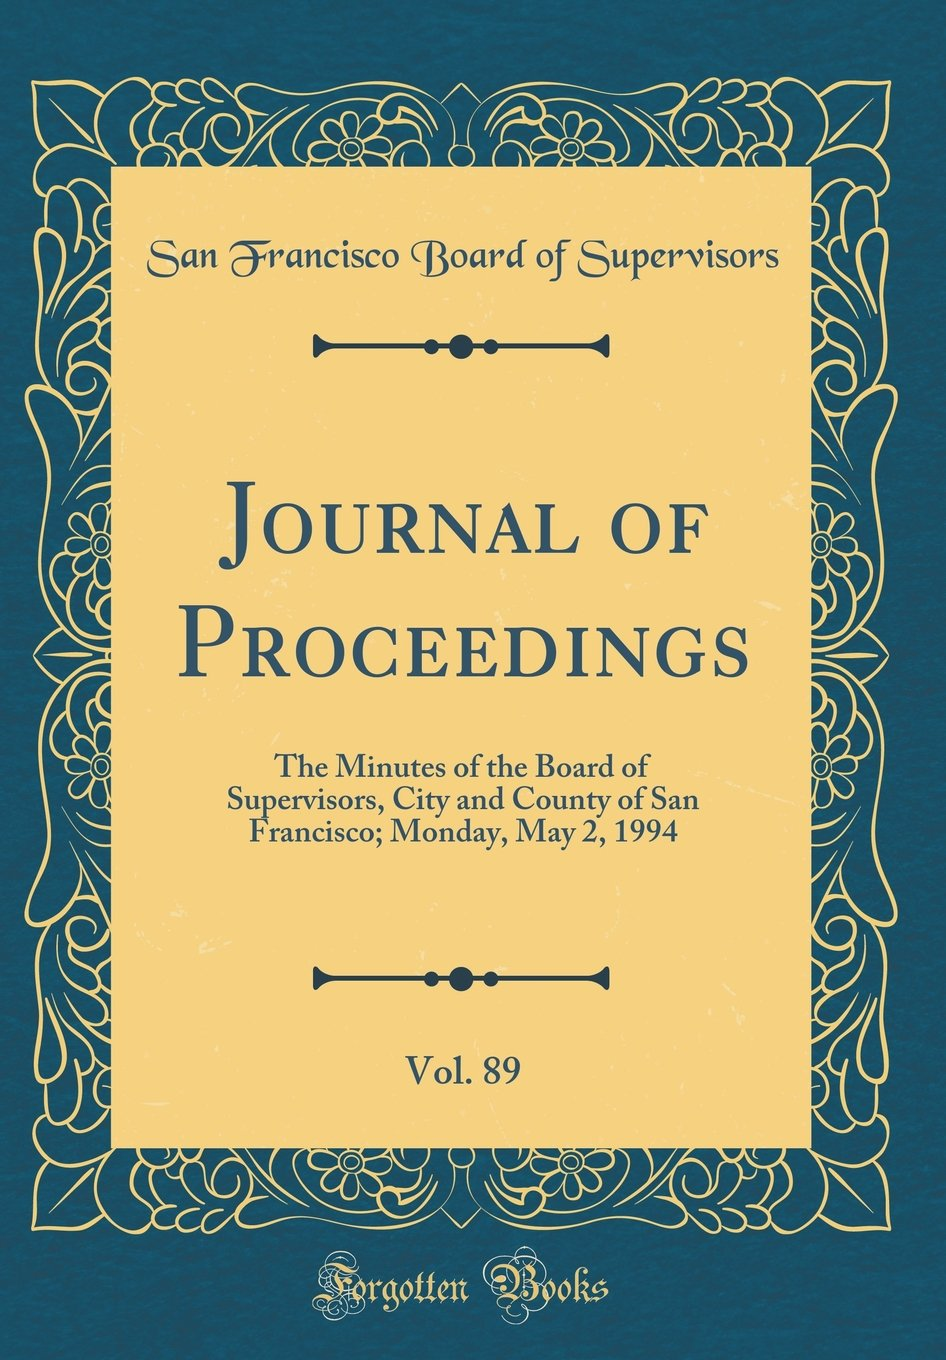 Journal of Proceedings, Vol. 89: The Minutes of the Board of Supervisors, City and County of San Francisco; Monday, May 2, 1994 (Classic Reprint) pdf